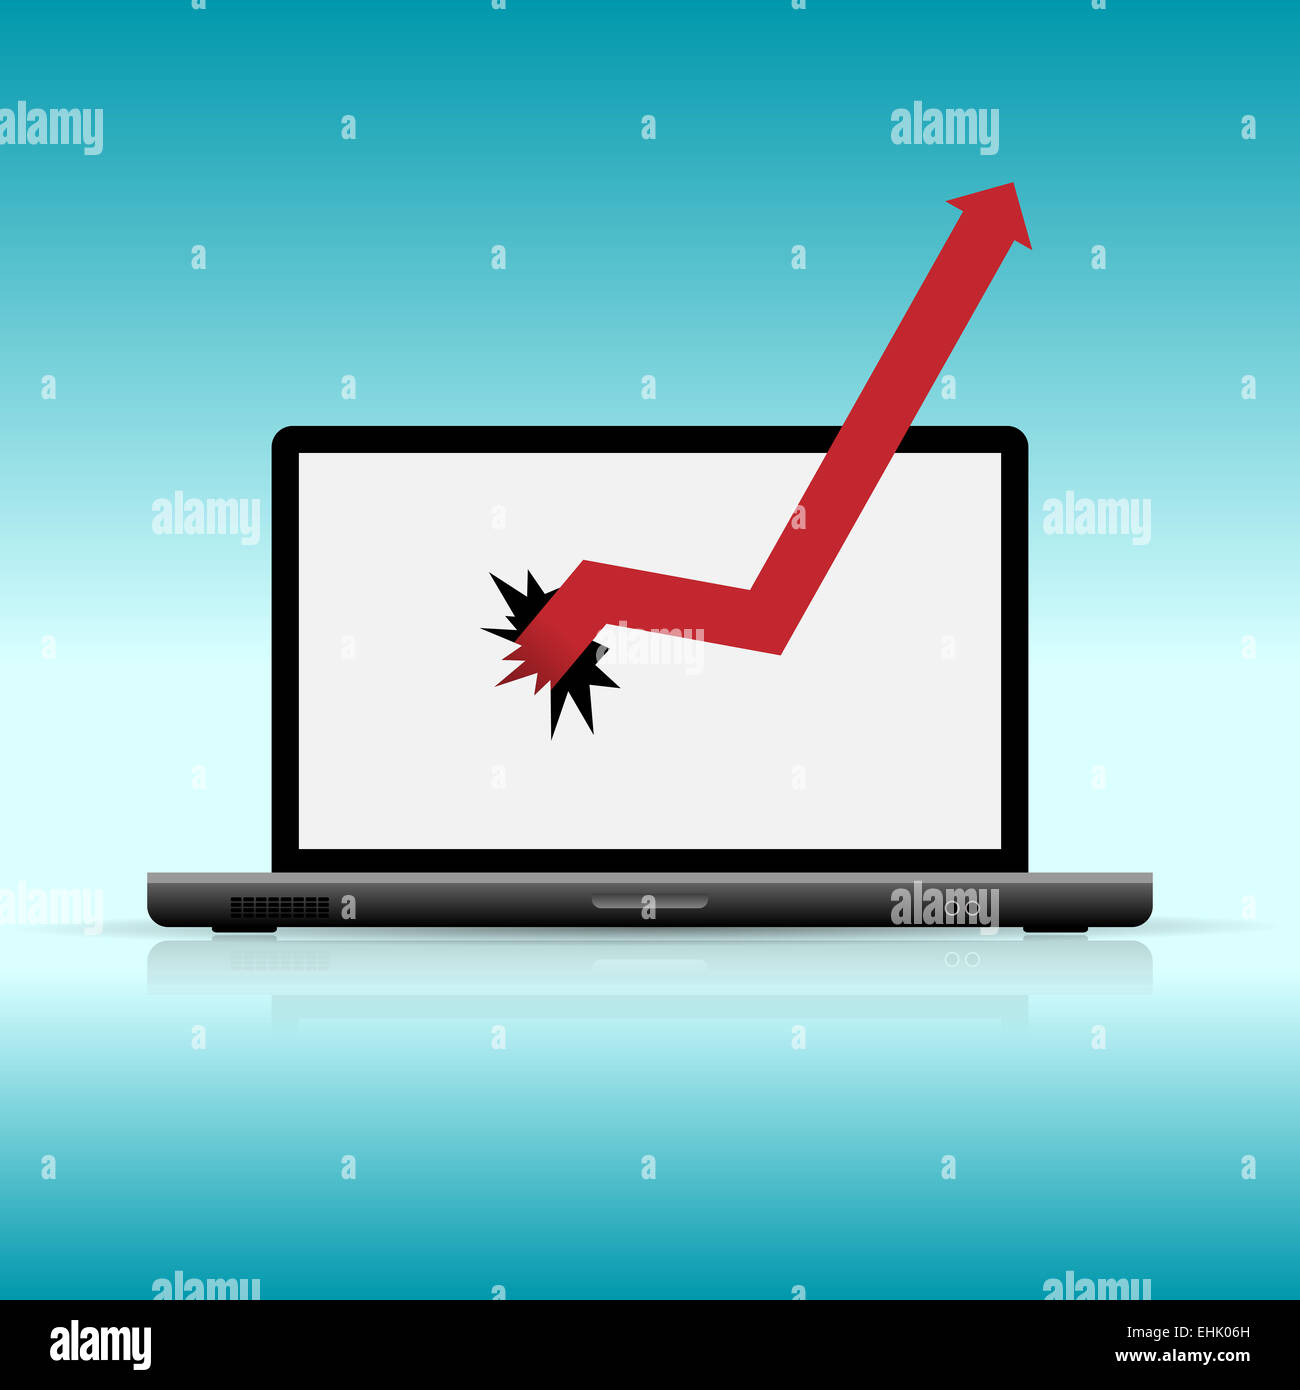 Vector illustration of graphic breaking laptop. - Stock Image